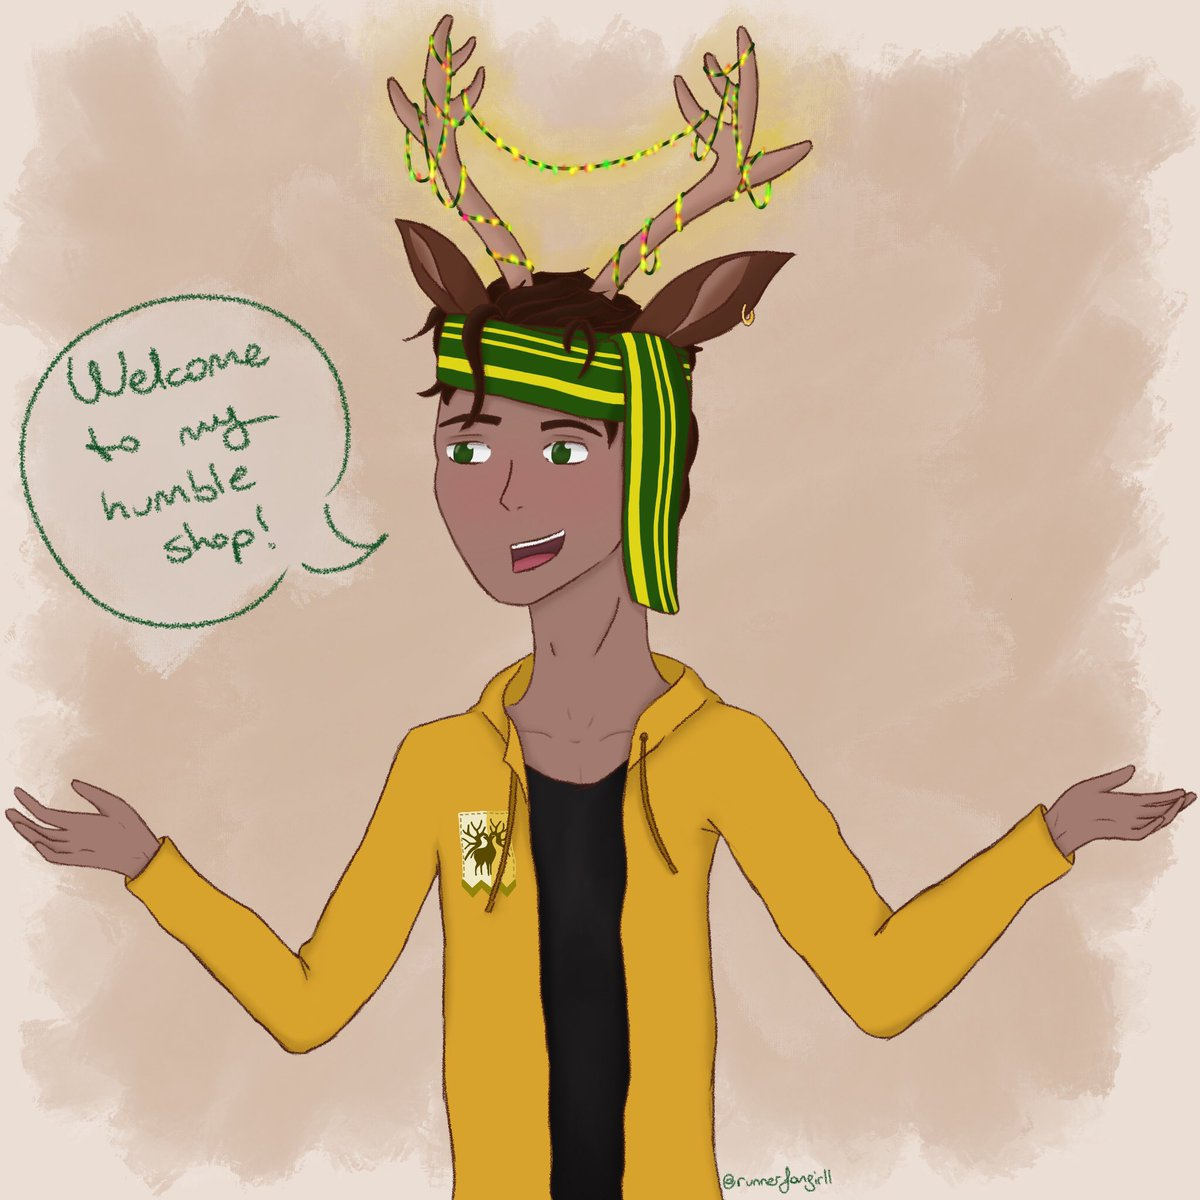 """Inspired by @MxTicketyBoo , @dustofwarfare and @faewrites 's amazing Dimiclaudelix fic """"Under Construction,"""" I offer you deerboy Claude! With LED lights hanging from his antlers!! Cause this image has been stuck in my mind since I read ch.5 and I had to draw it eventually lol"""